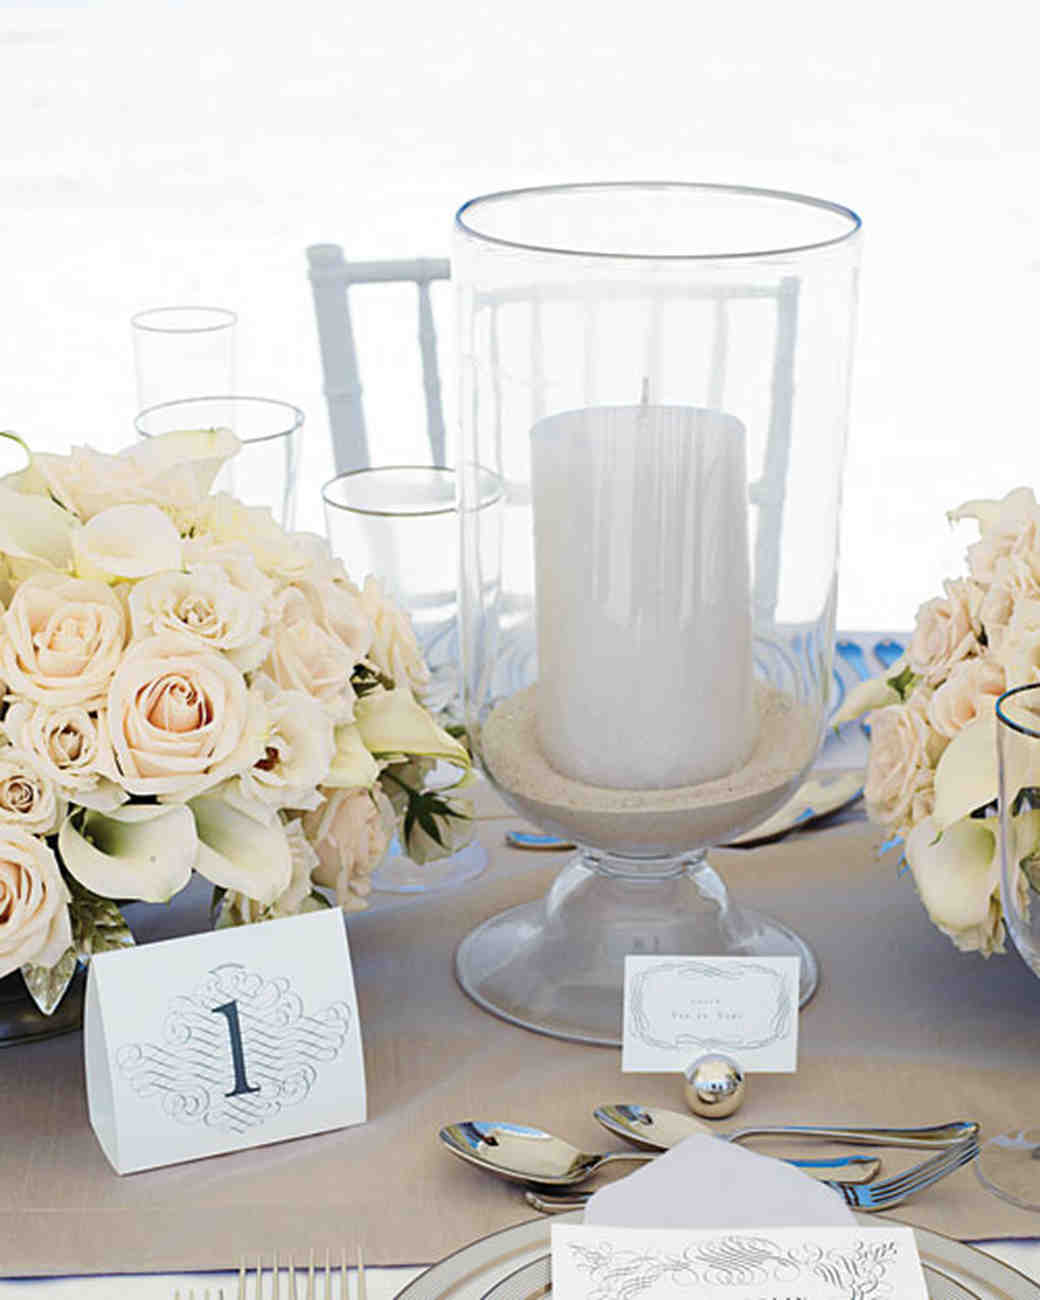 Wedding Centerpieces: Beach Wedding Centerpieces